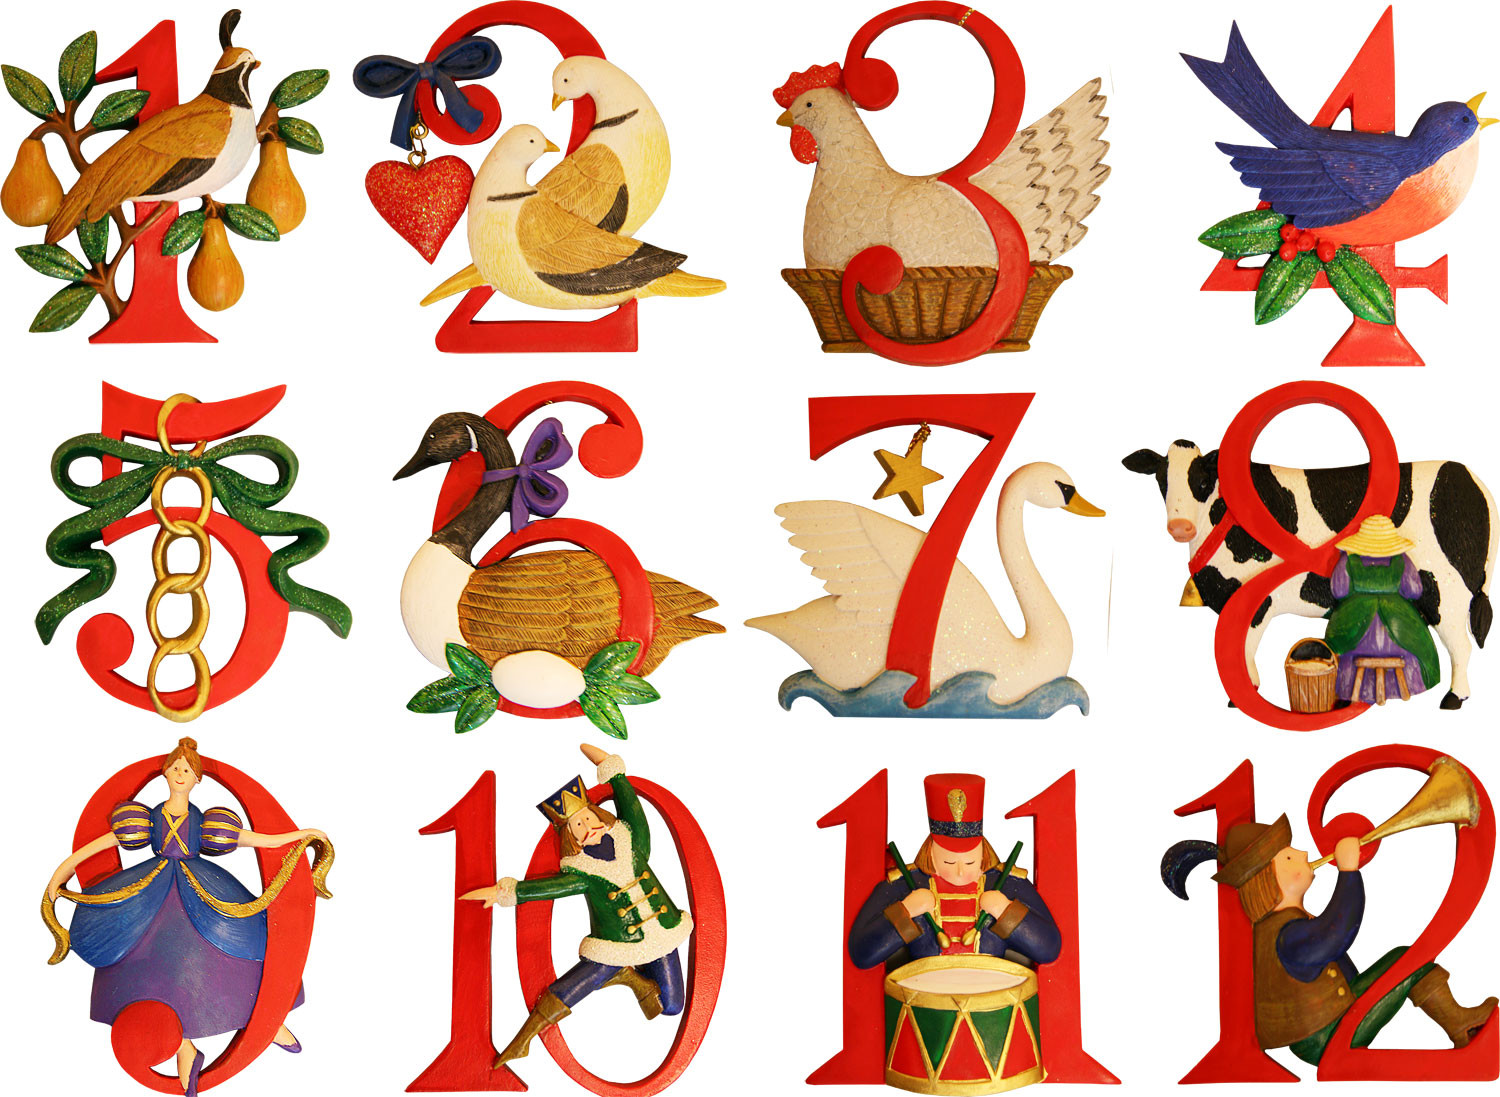 Christmas Carol Meaning.The Meaning Of 12 Days Of Christmas Carol Guernseydonkey Com